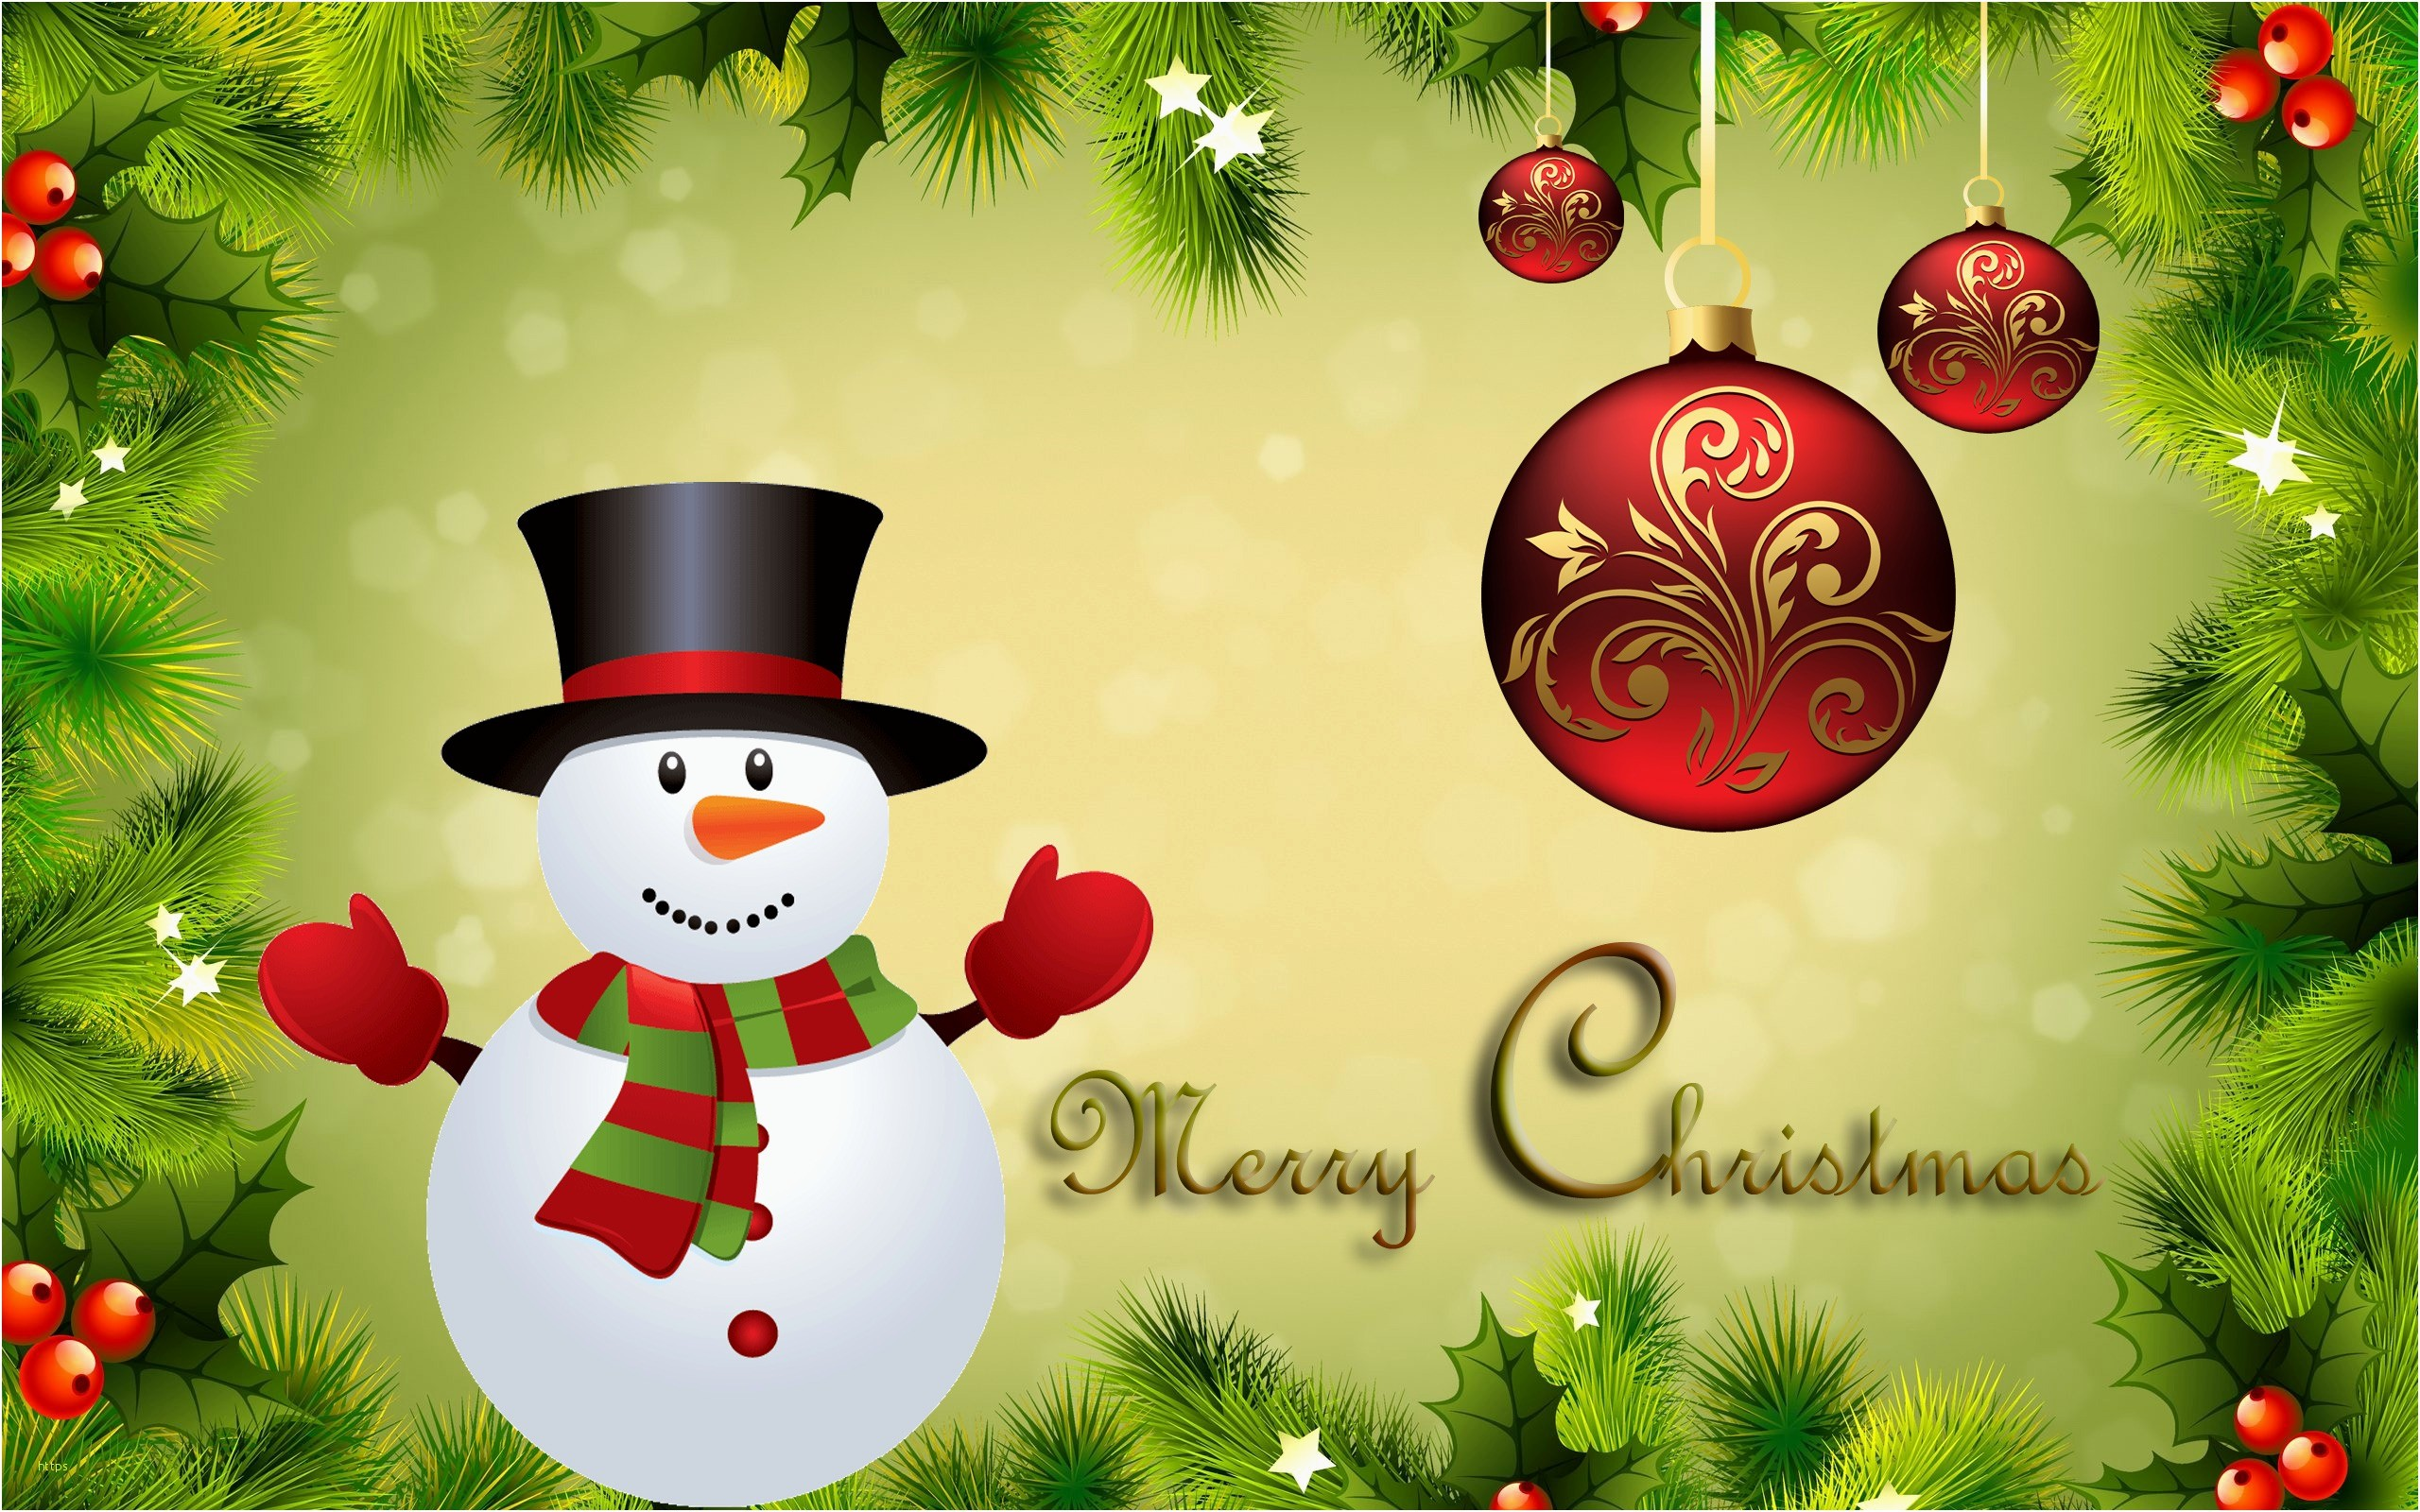 2560x1600 Free Christmas Desktop Wallpaper Elegant Cute Christmas Desktop Backgrounds